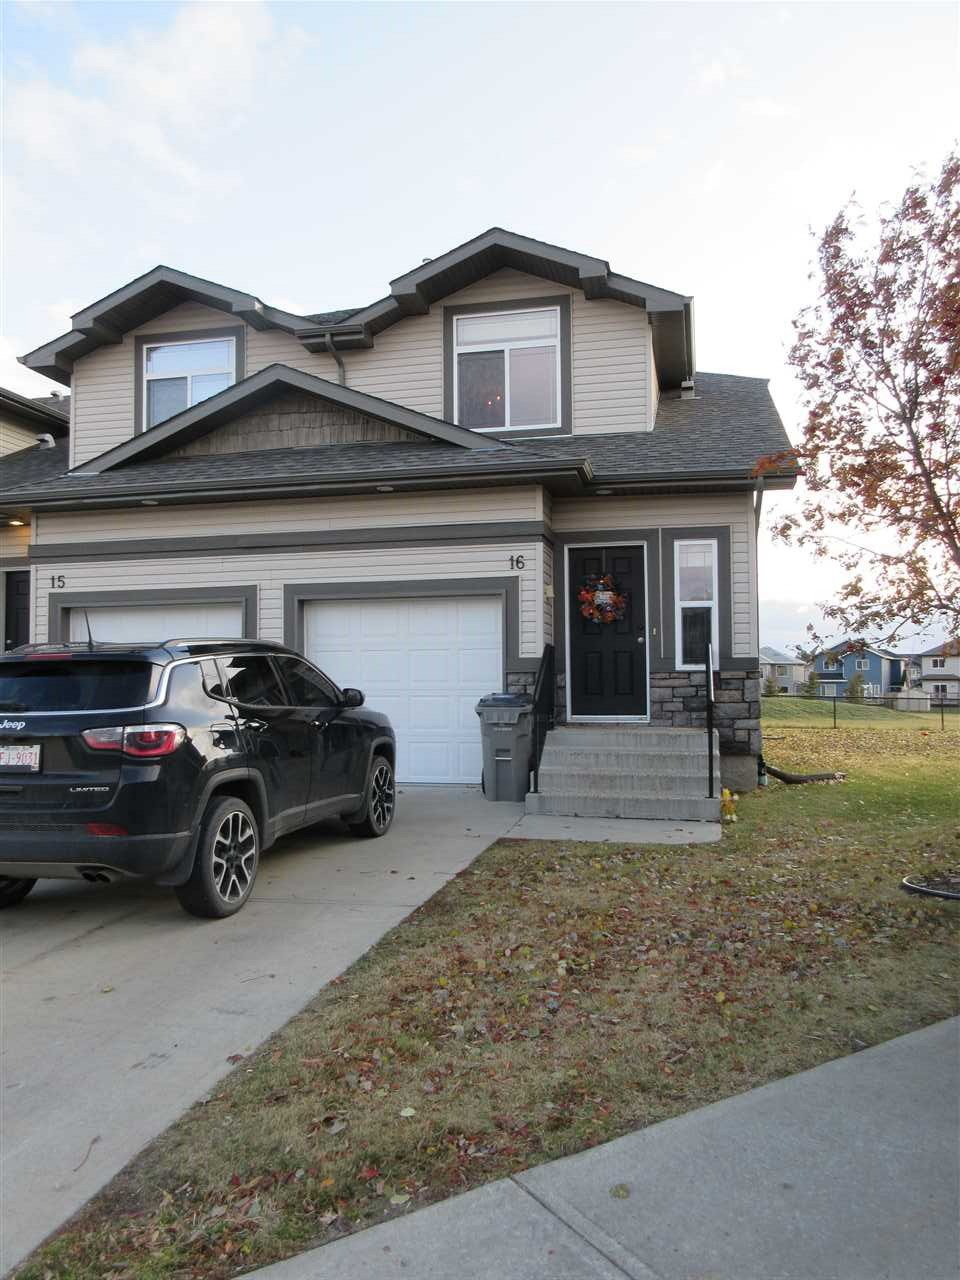 Main Photo: 16 9511 102 Avenue: Morinville Townhouse for sale : MLS®# E4178333